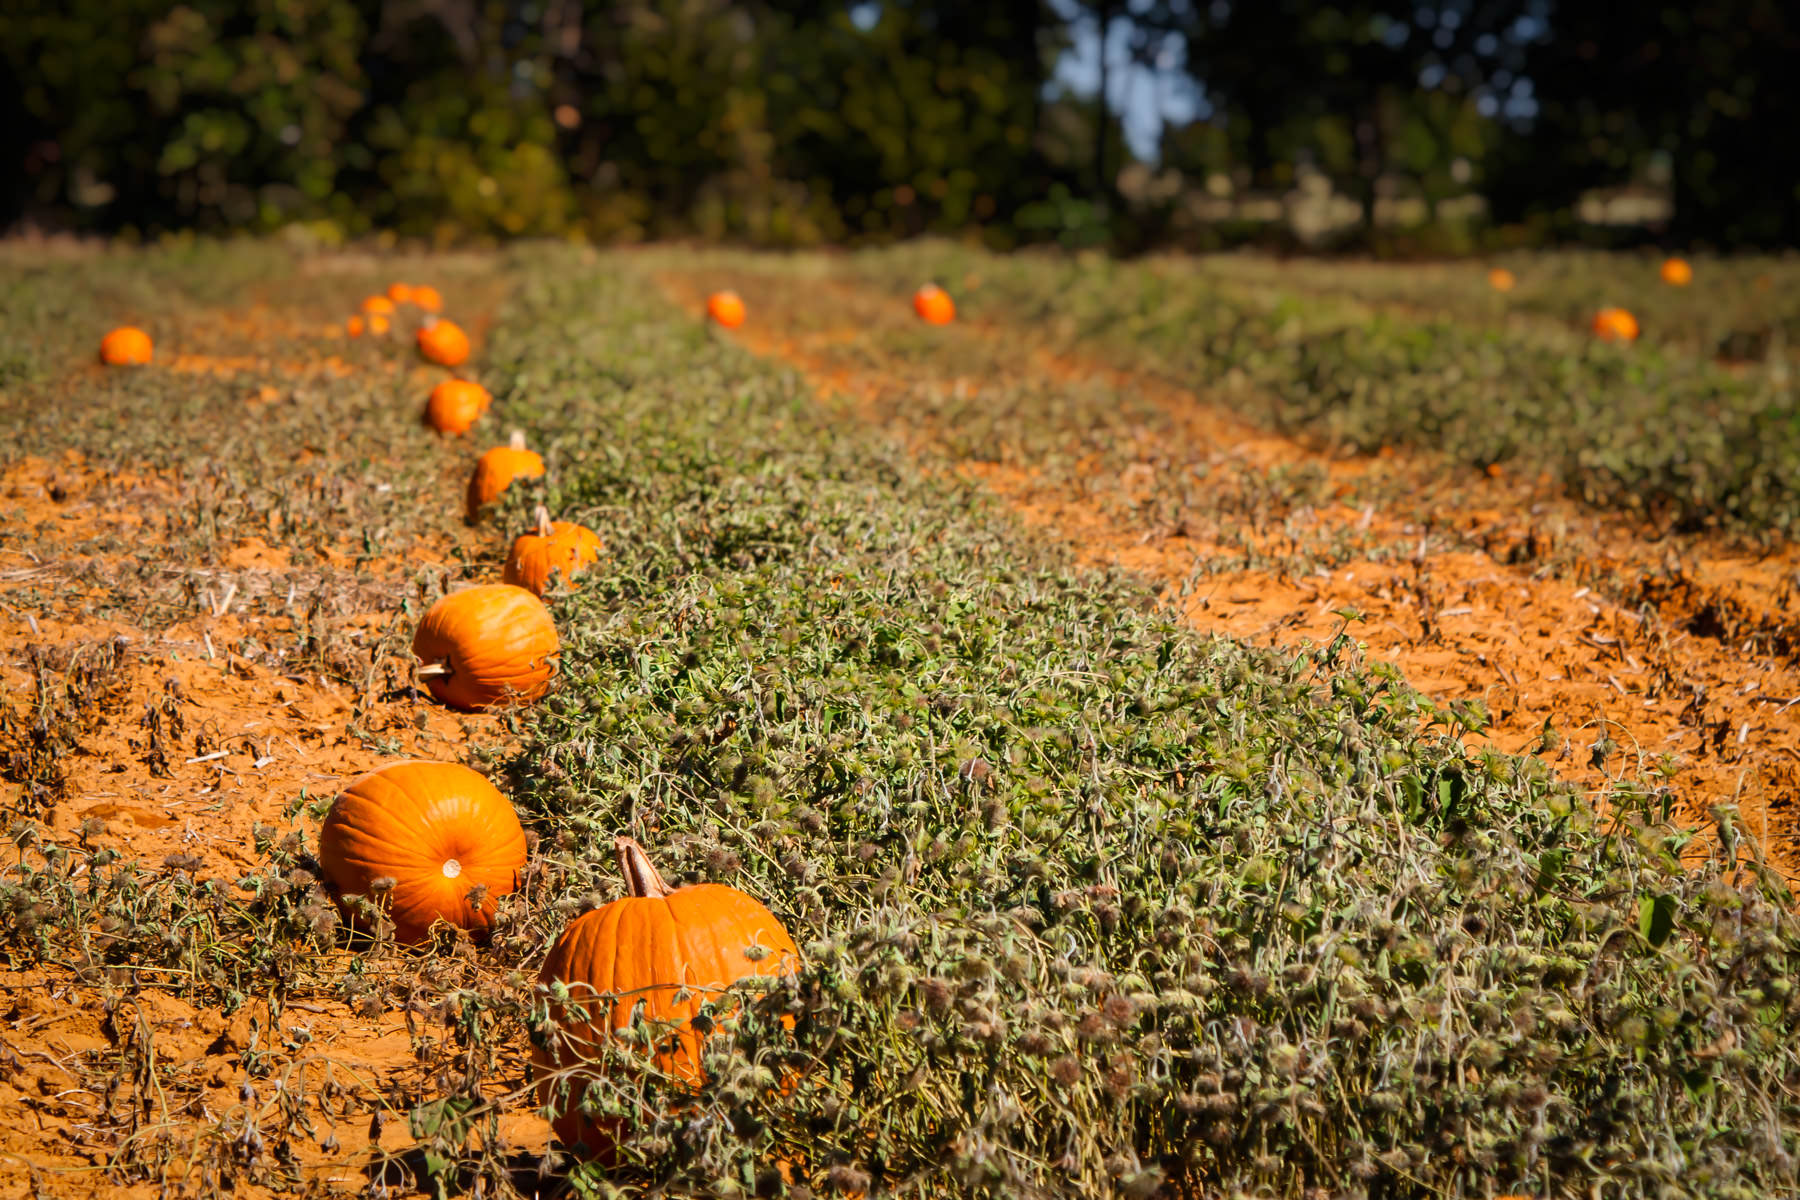 A seasonal pumpkin patch at Moore Farms, Bullard, Texas.